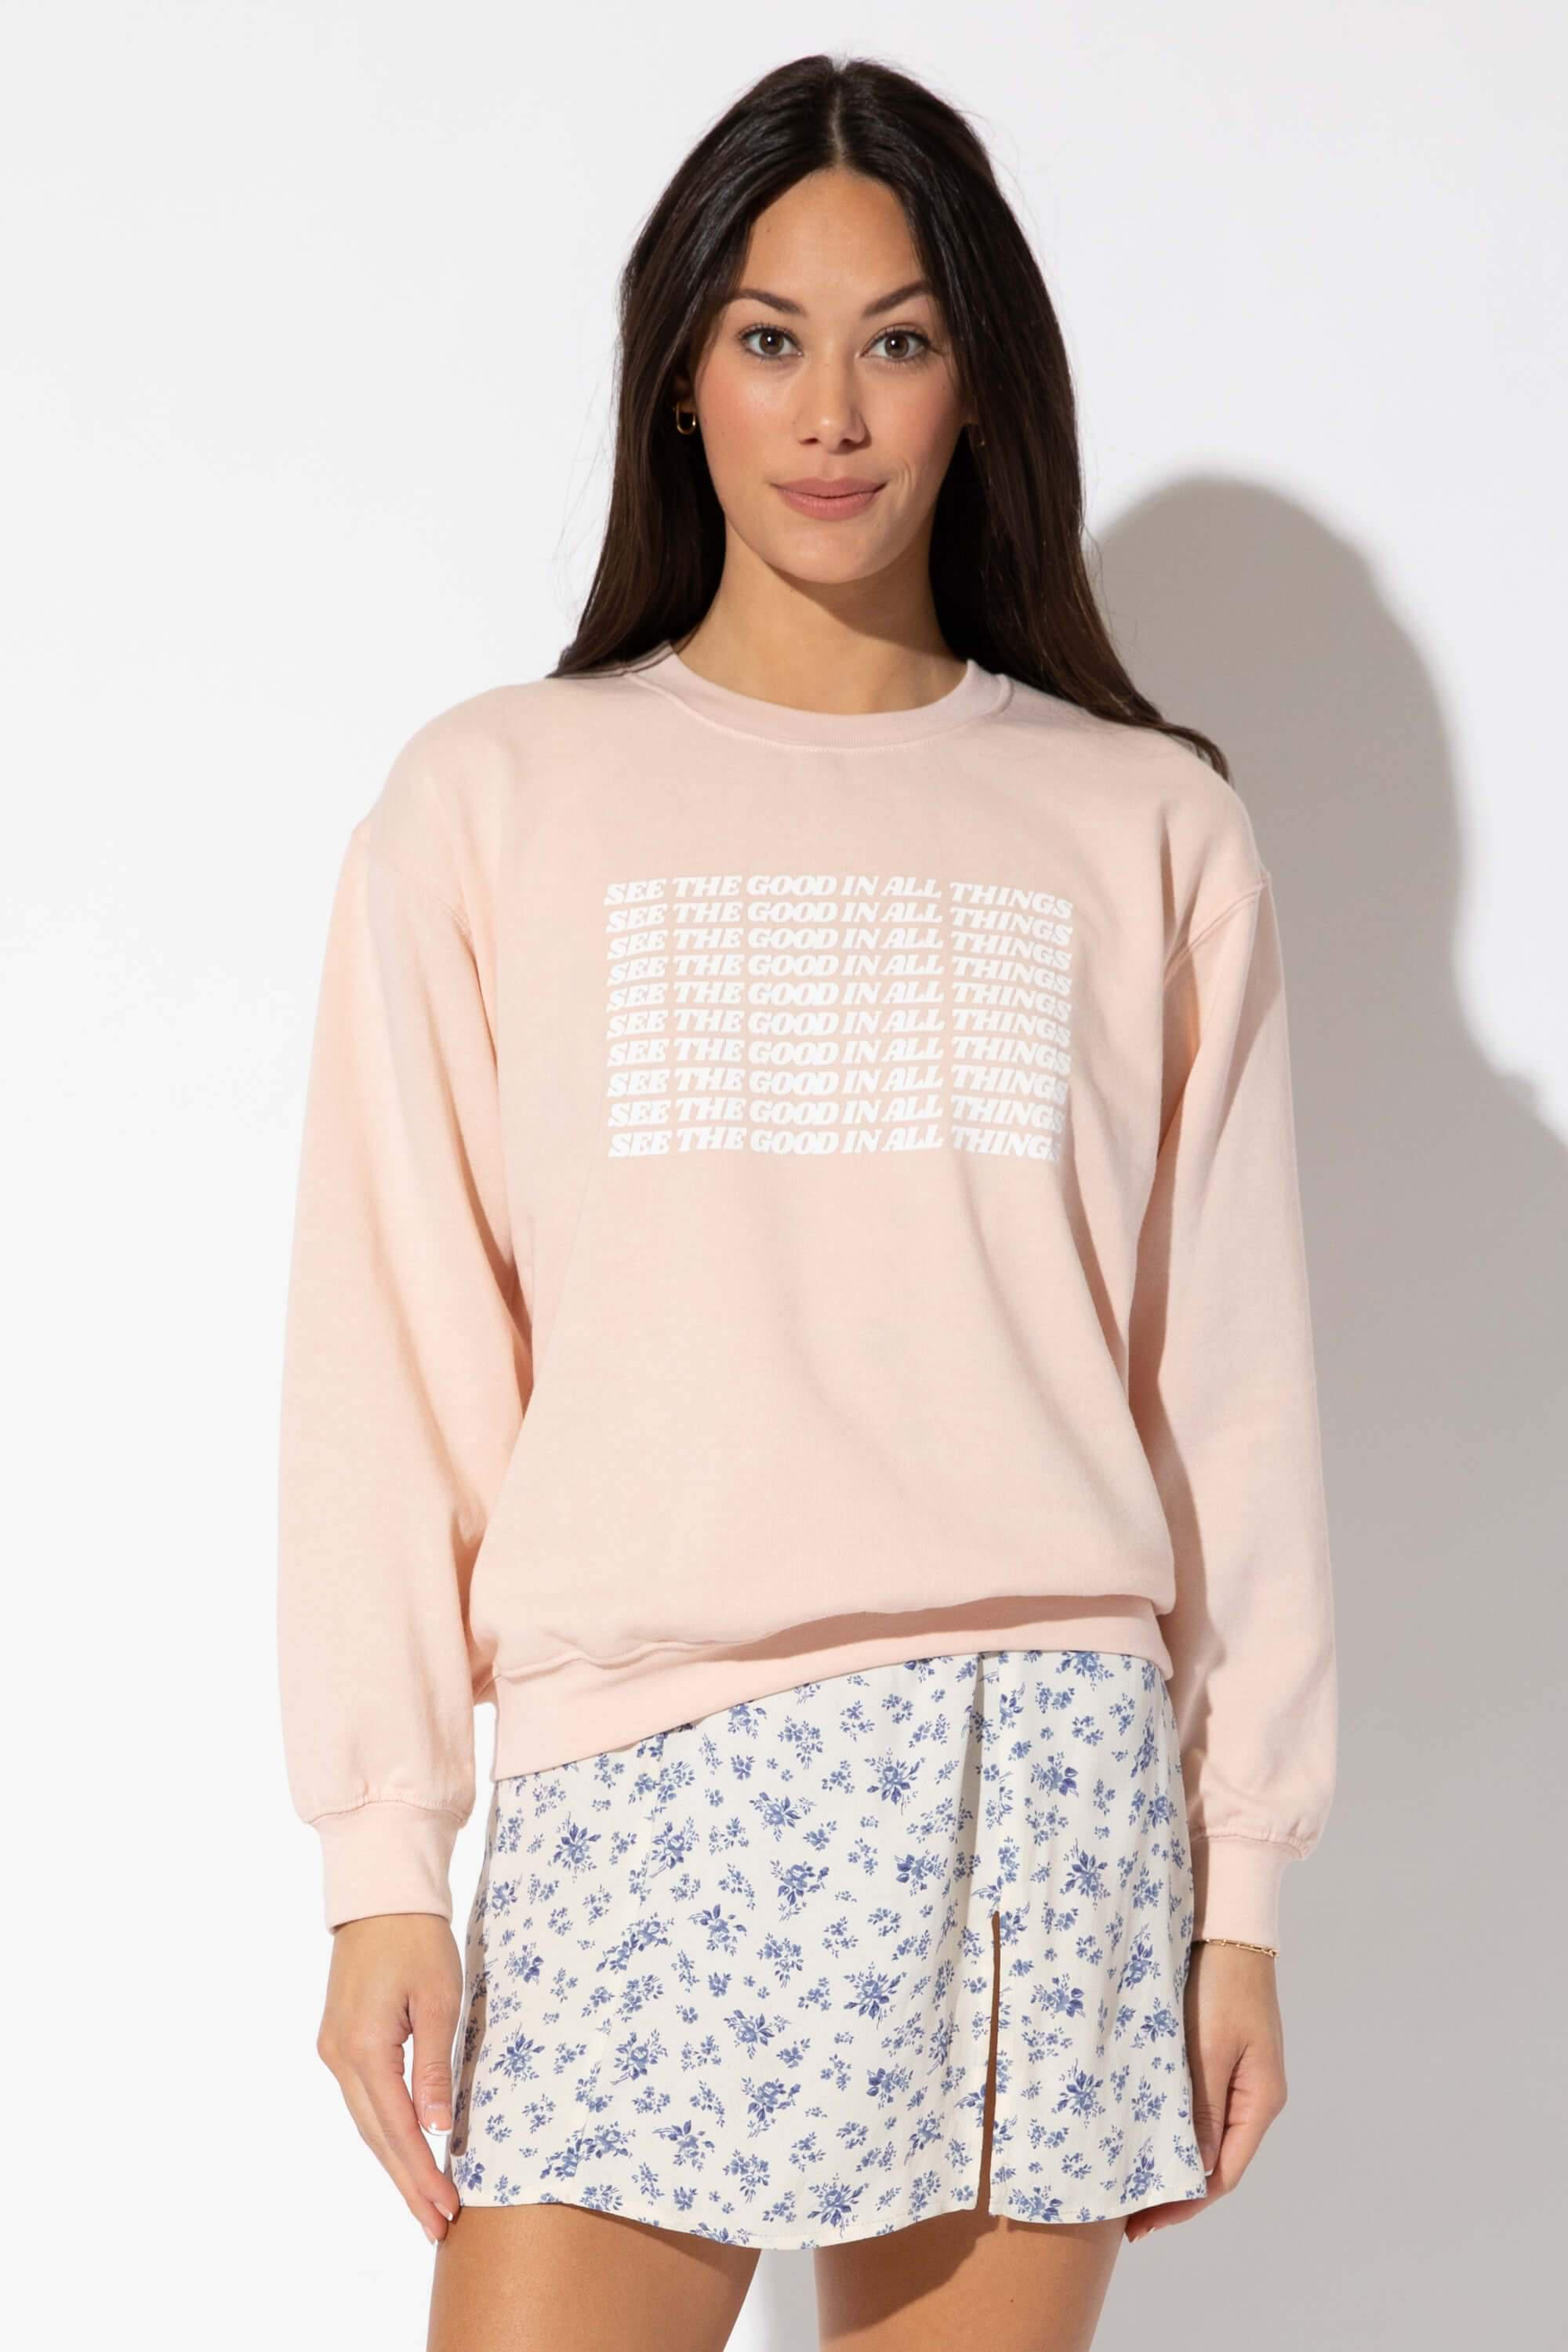 SEE THE GOOD IN ALL THINGS WILLOW SWEATSHIRT